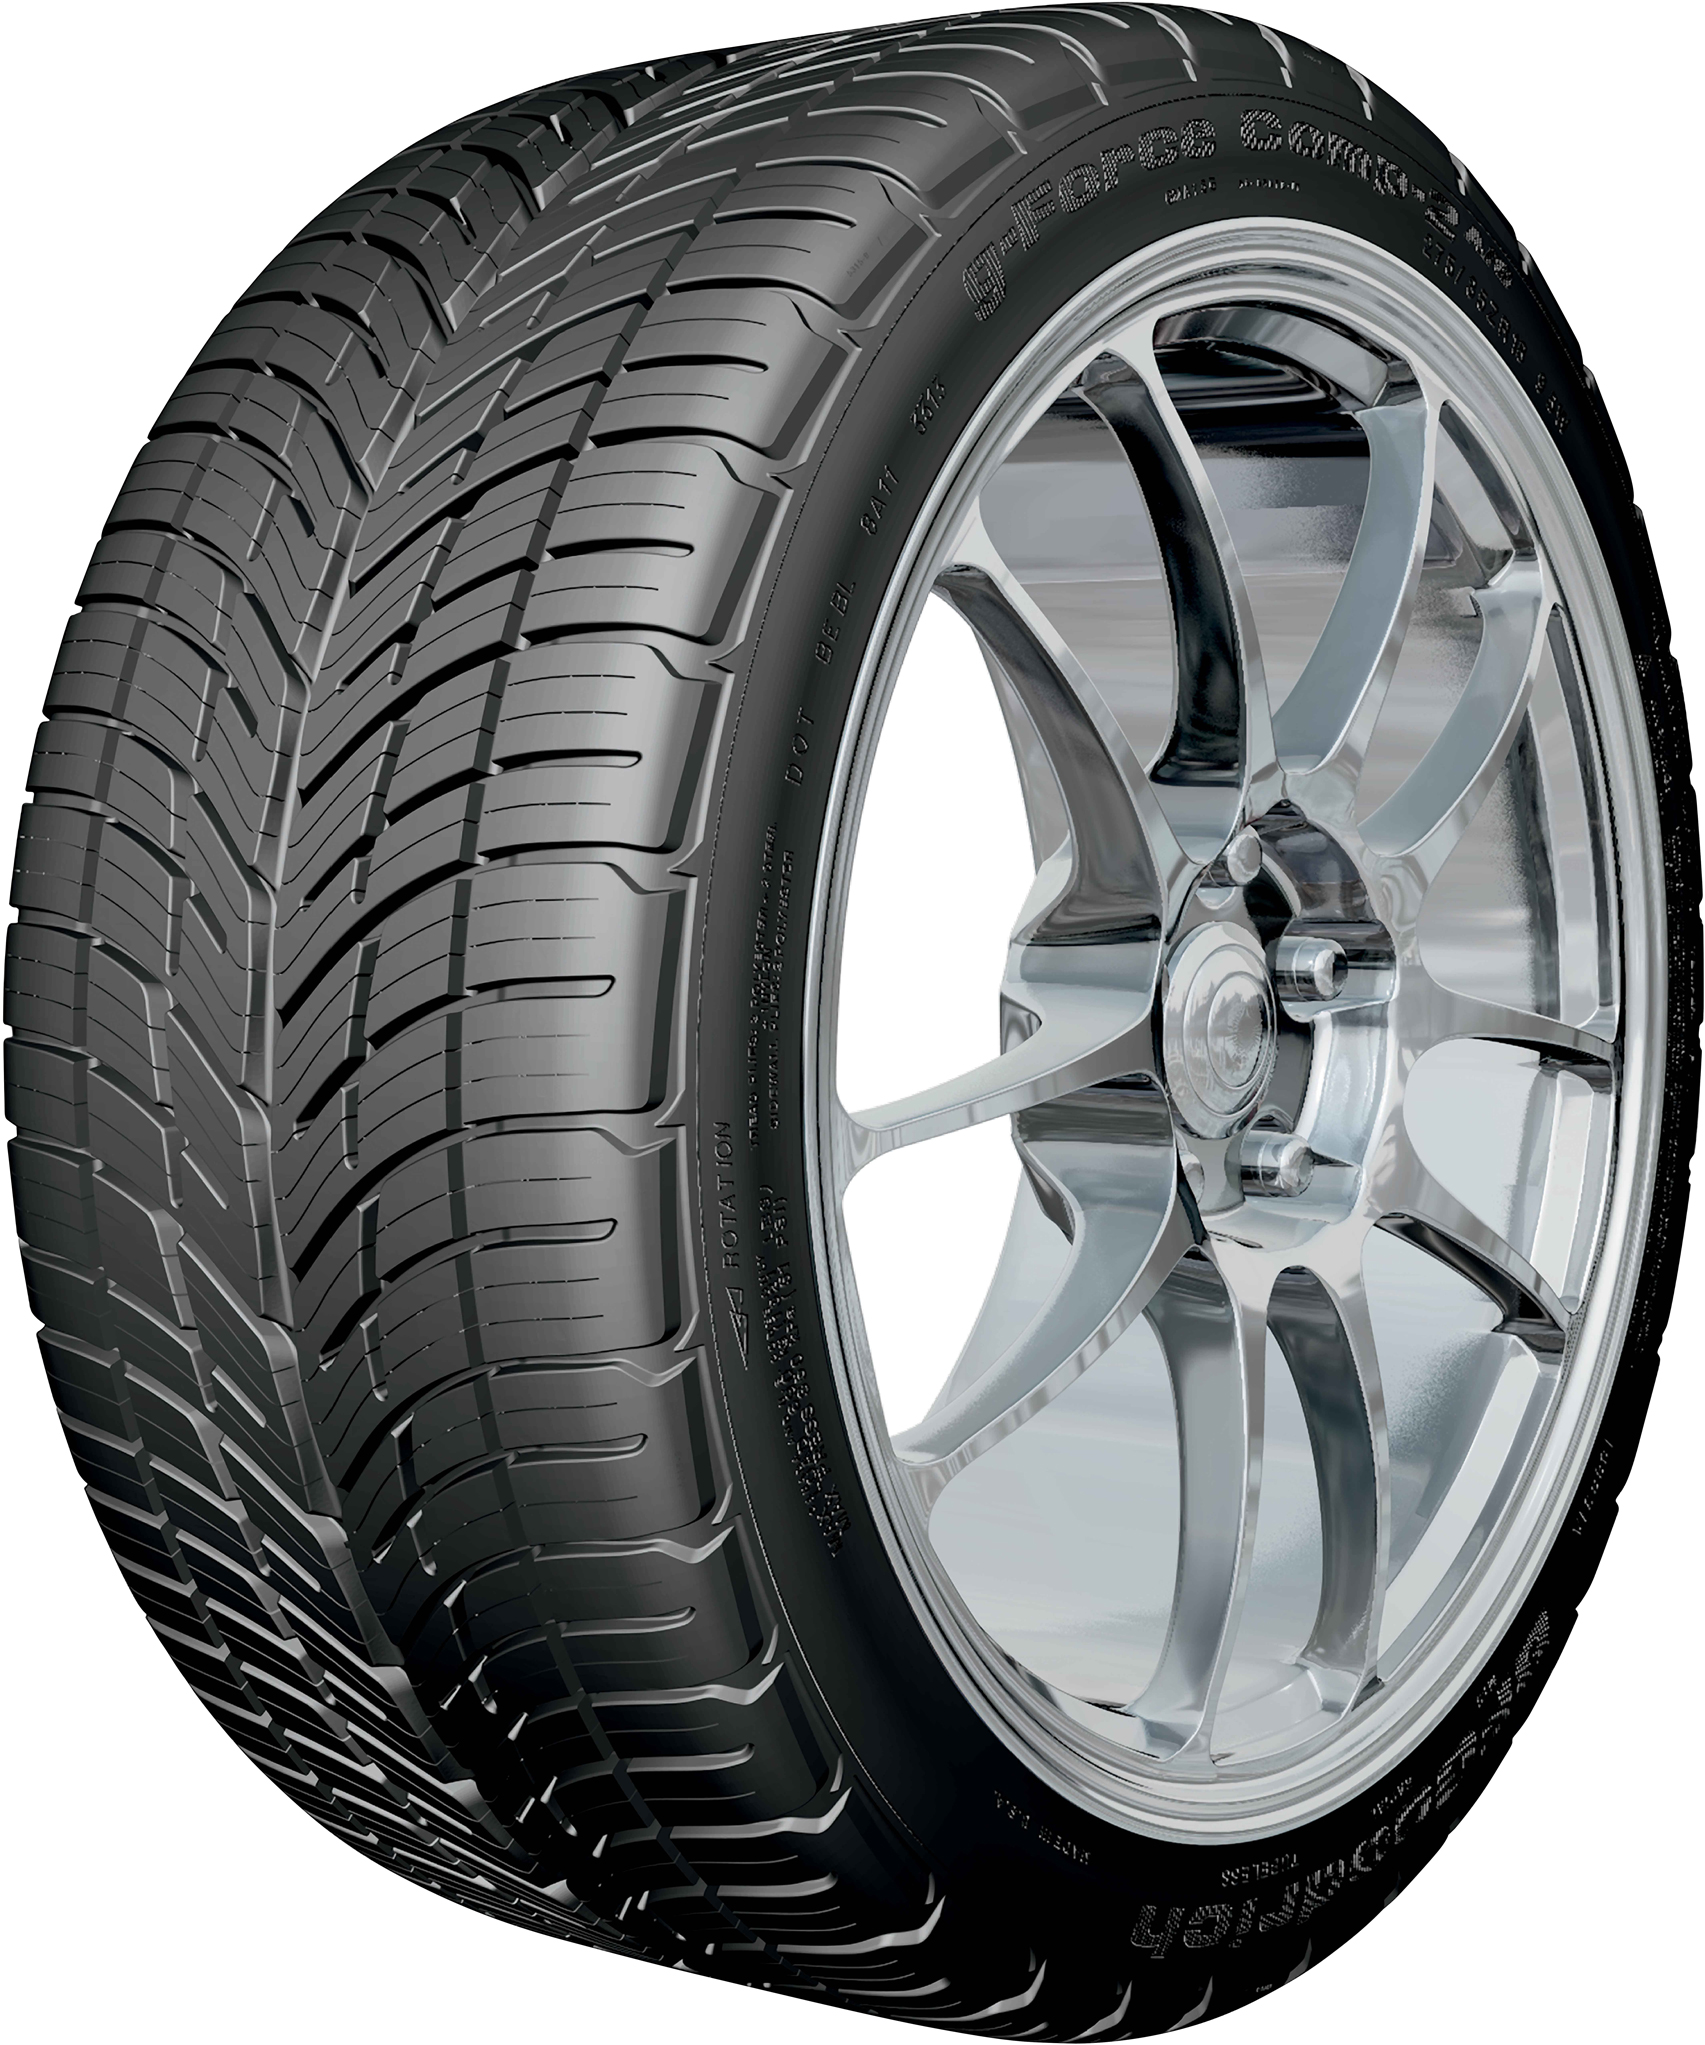 BFGoodrich G-Force Comp-2 A/S Tire Review